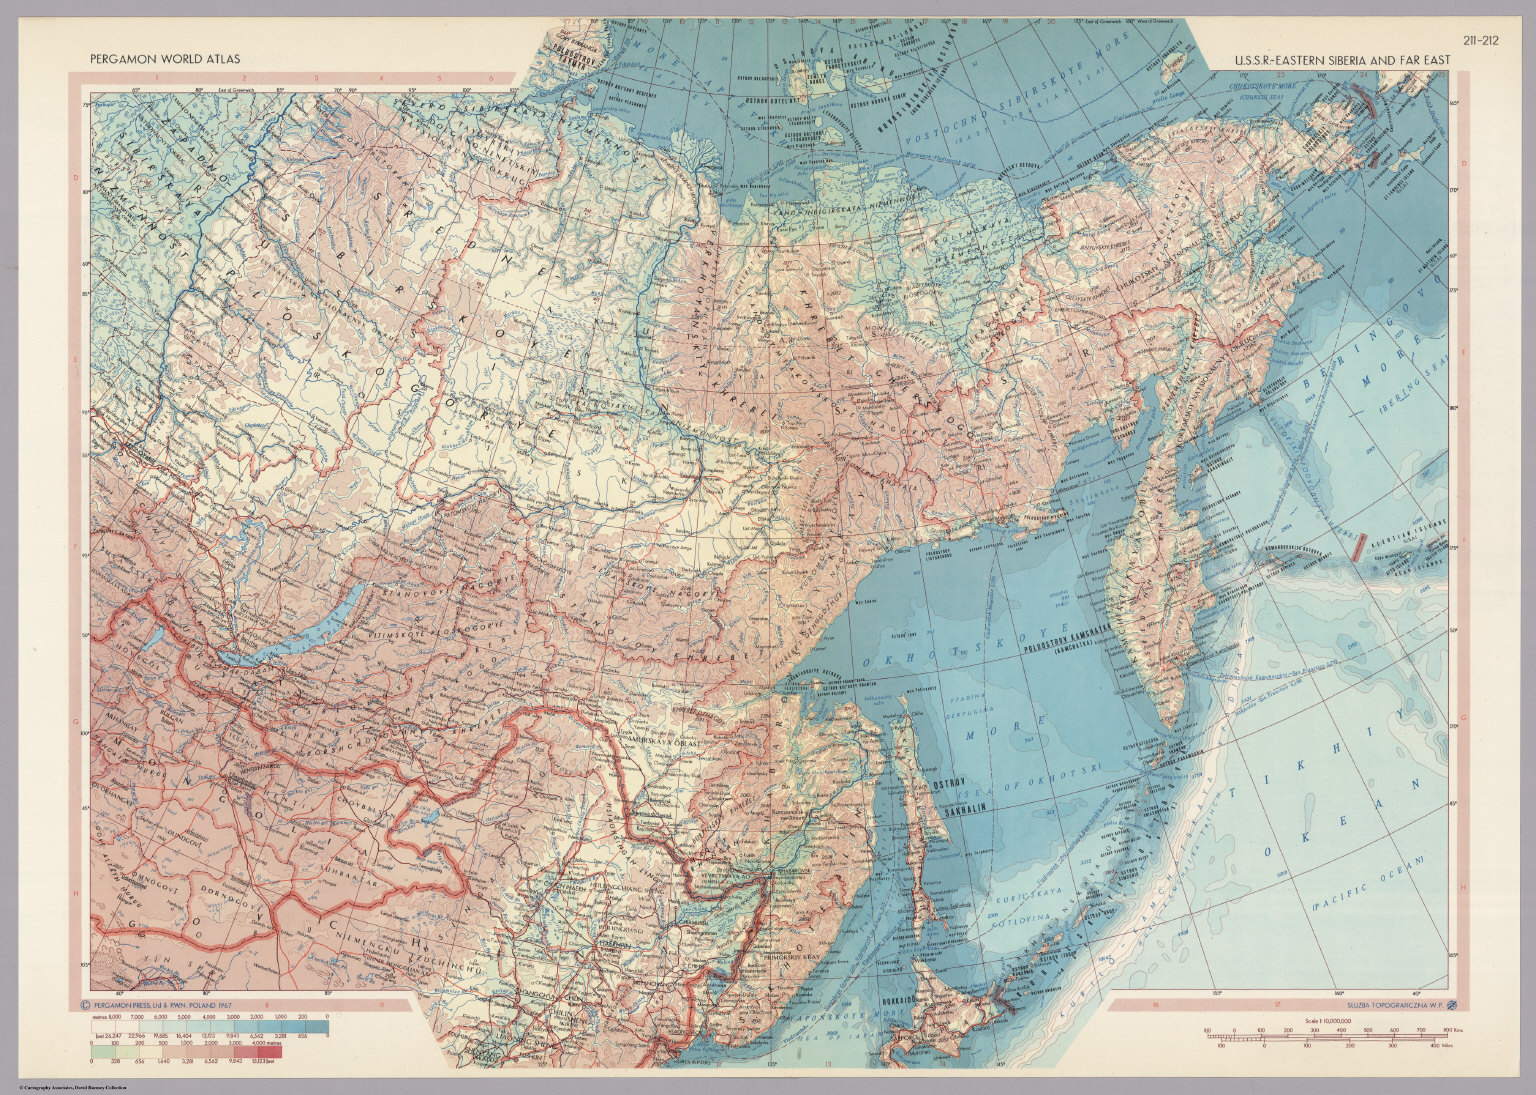 Where Is Siberia On A World Map.U S S R Eastern Siberia And Far East Pergamon World Atlas